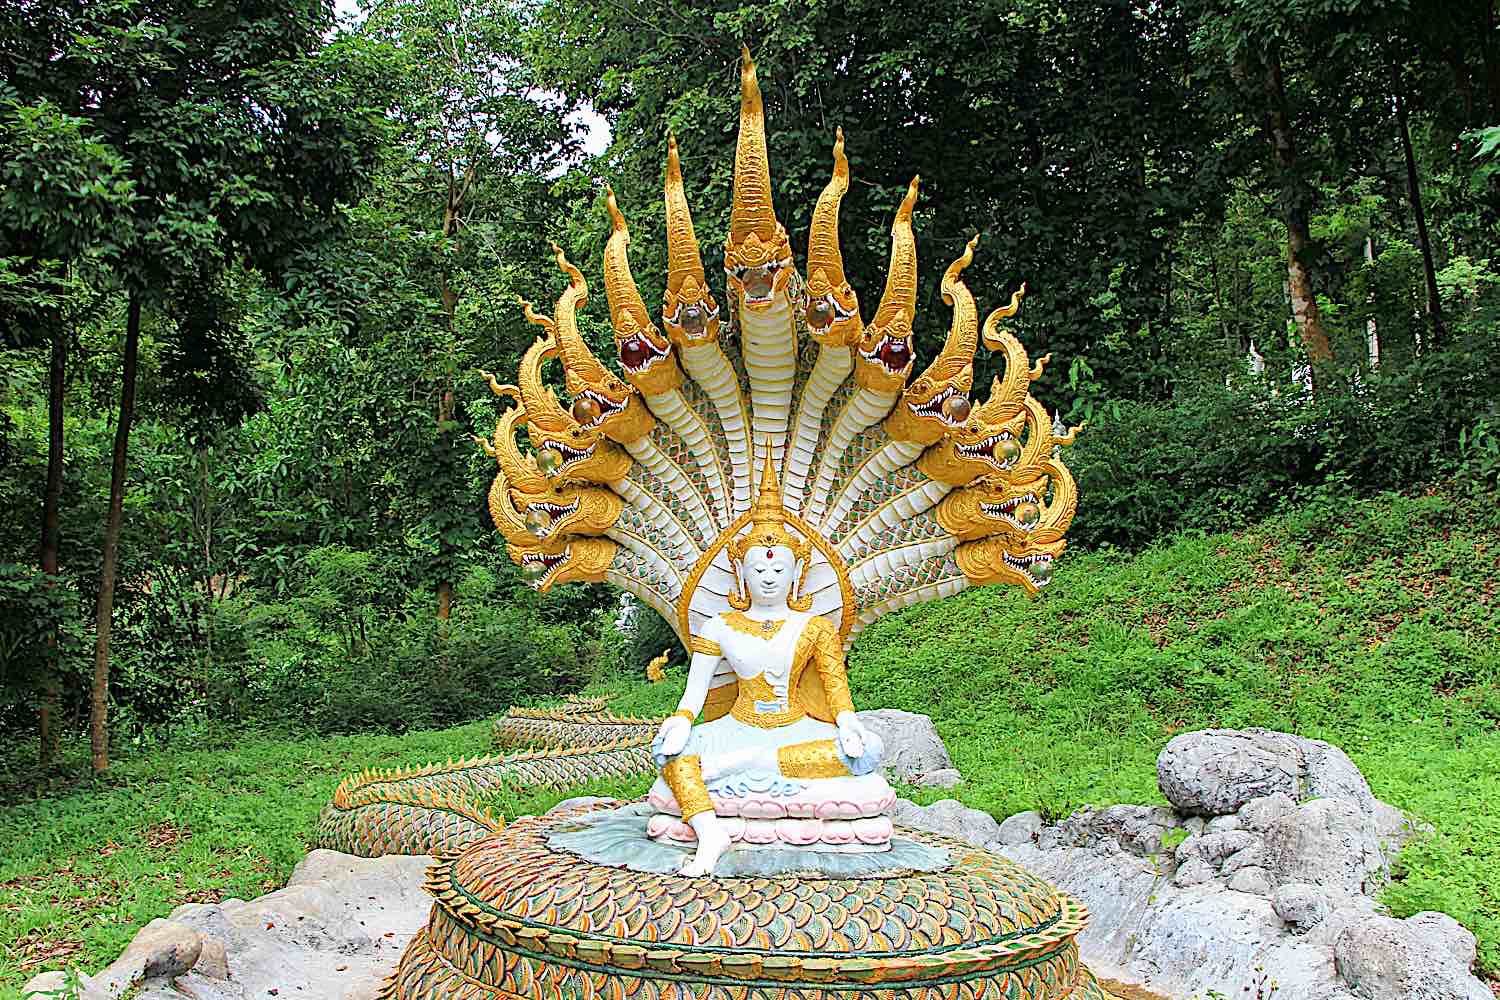 Famously, the Great Naga Mucalinda protected the Buddha for six days as he meditated under the Bodhi Tree. This is commemorated in countless statues of Buddha with a multi-headed Naga shielding him from the rain.